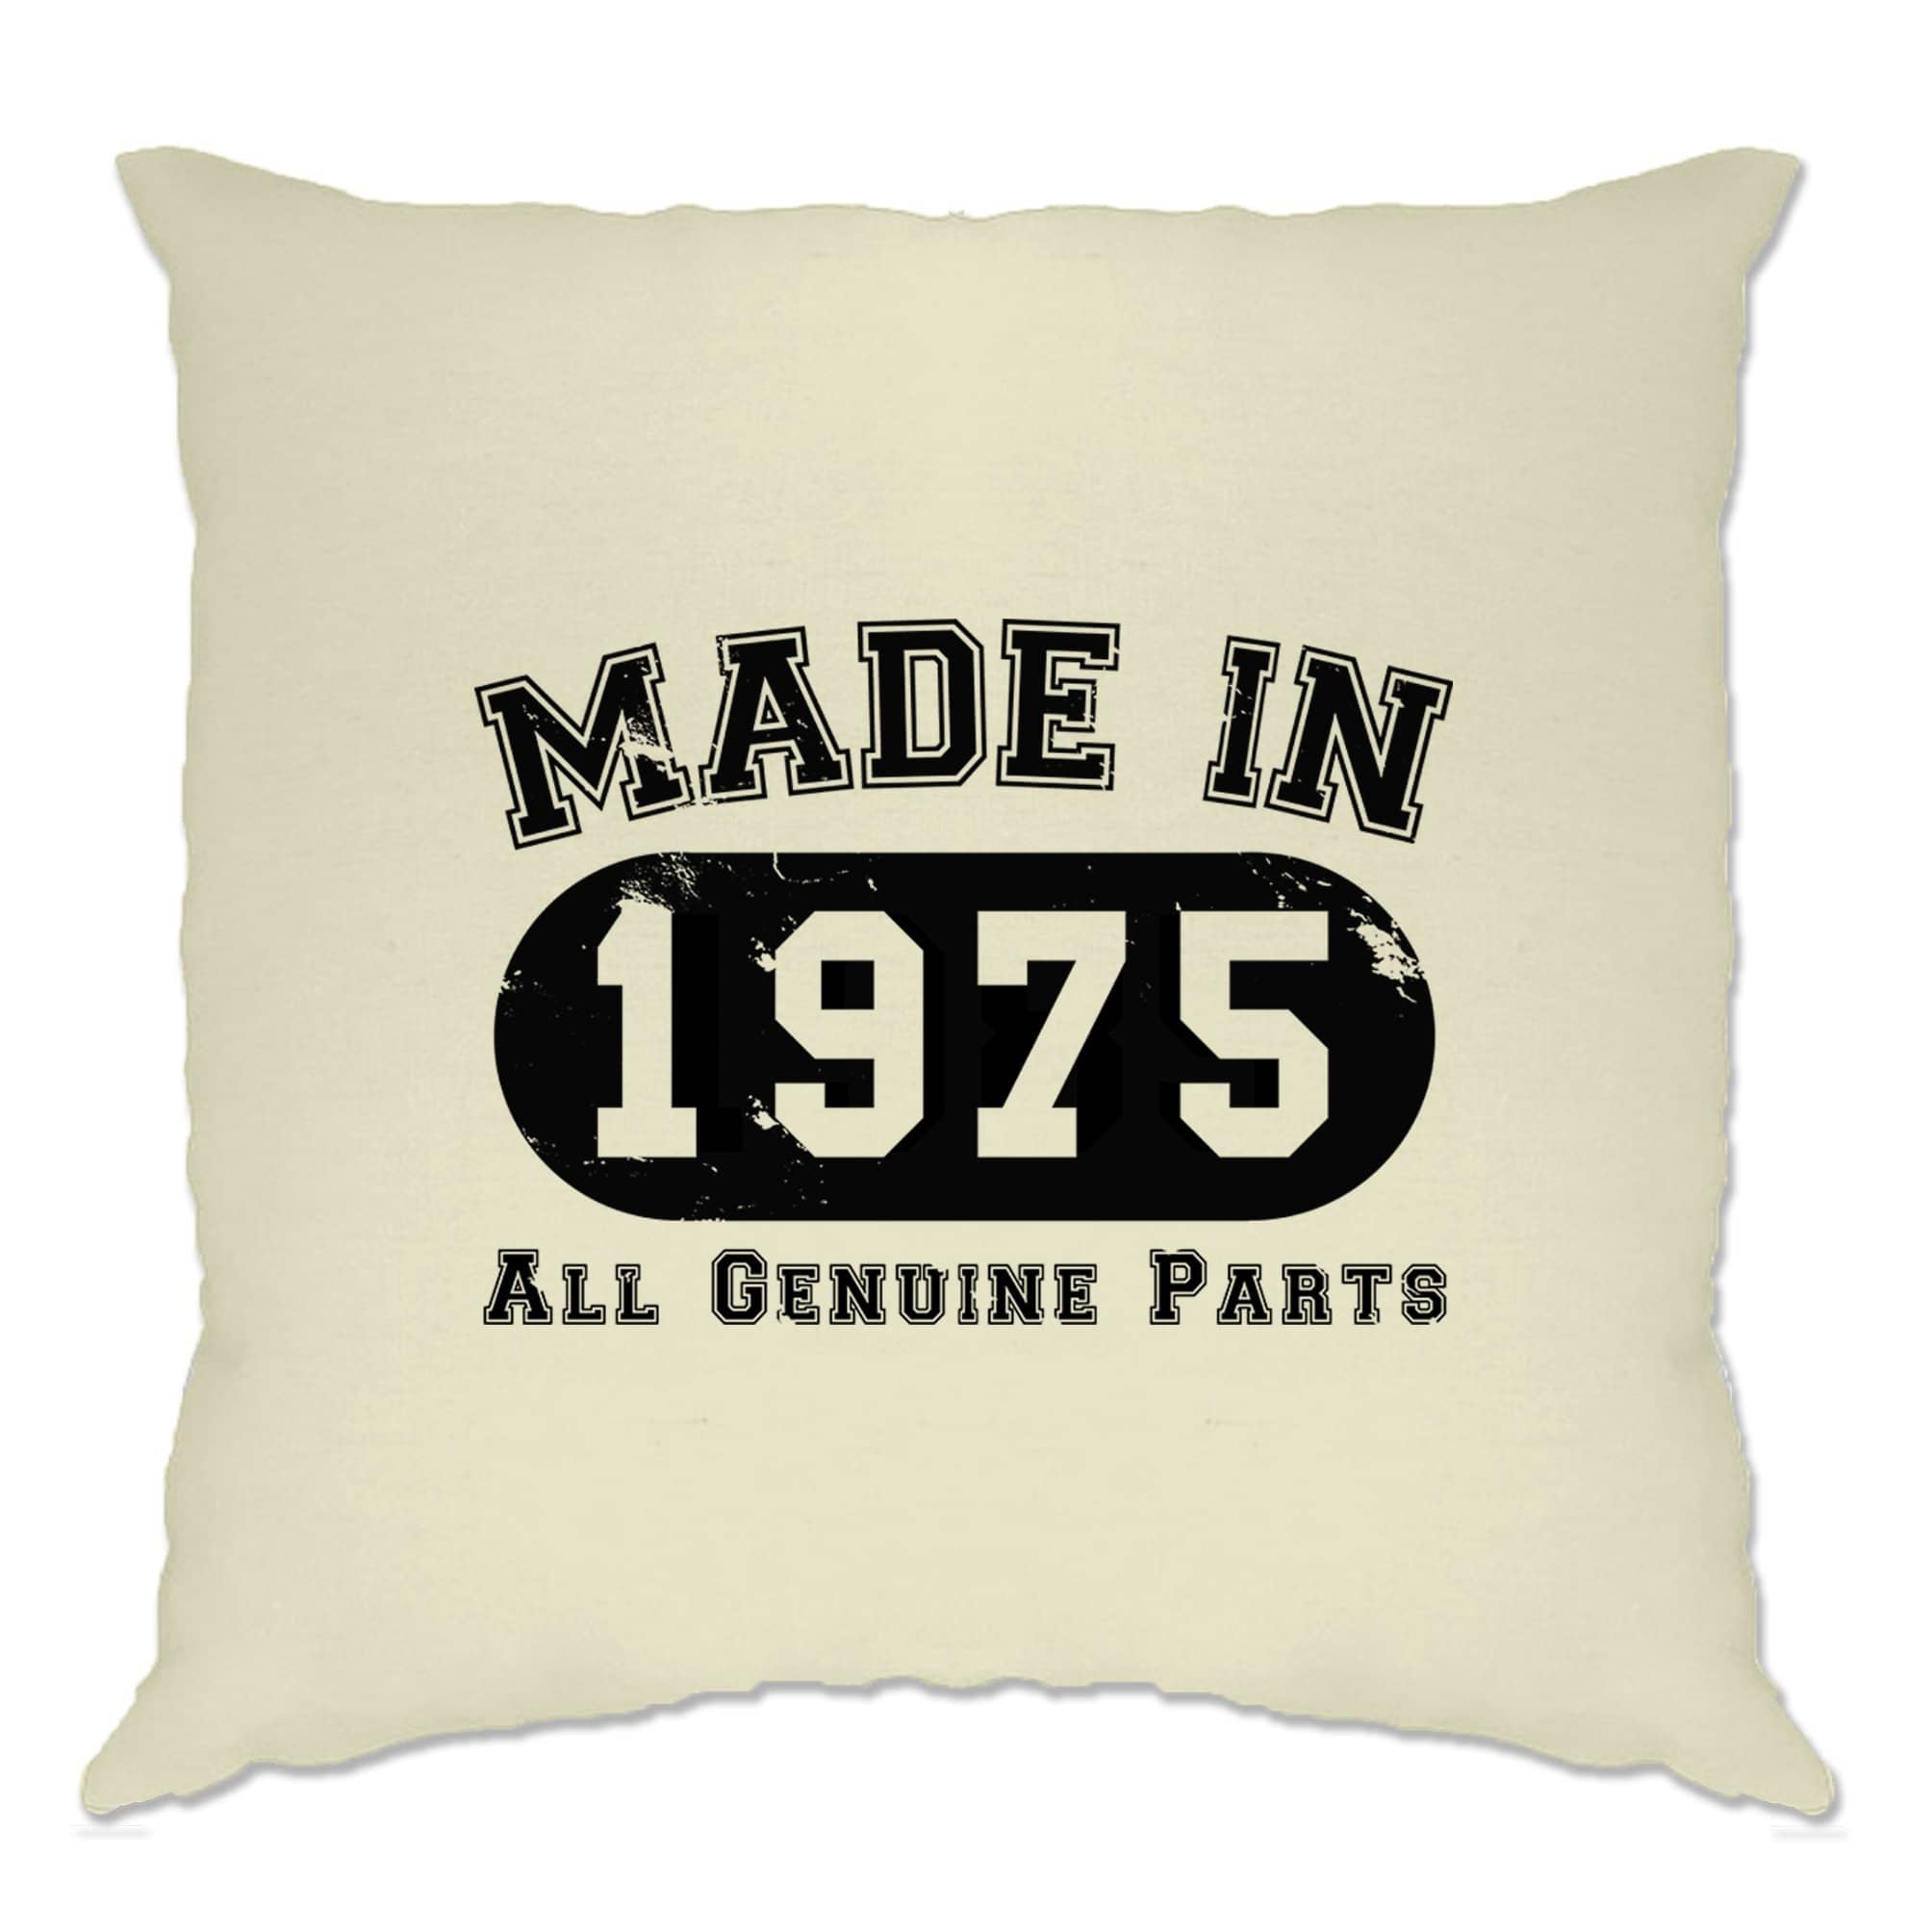 Birthday Cushion Cover Made in 1975 All Genuine Parts